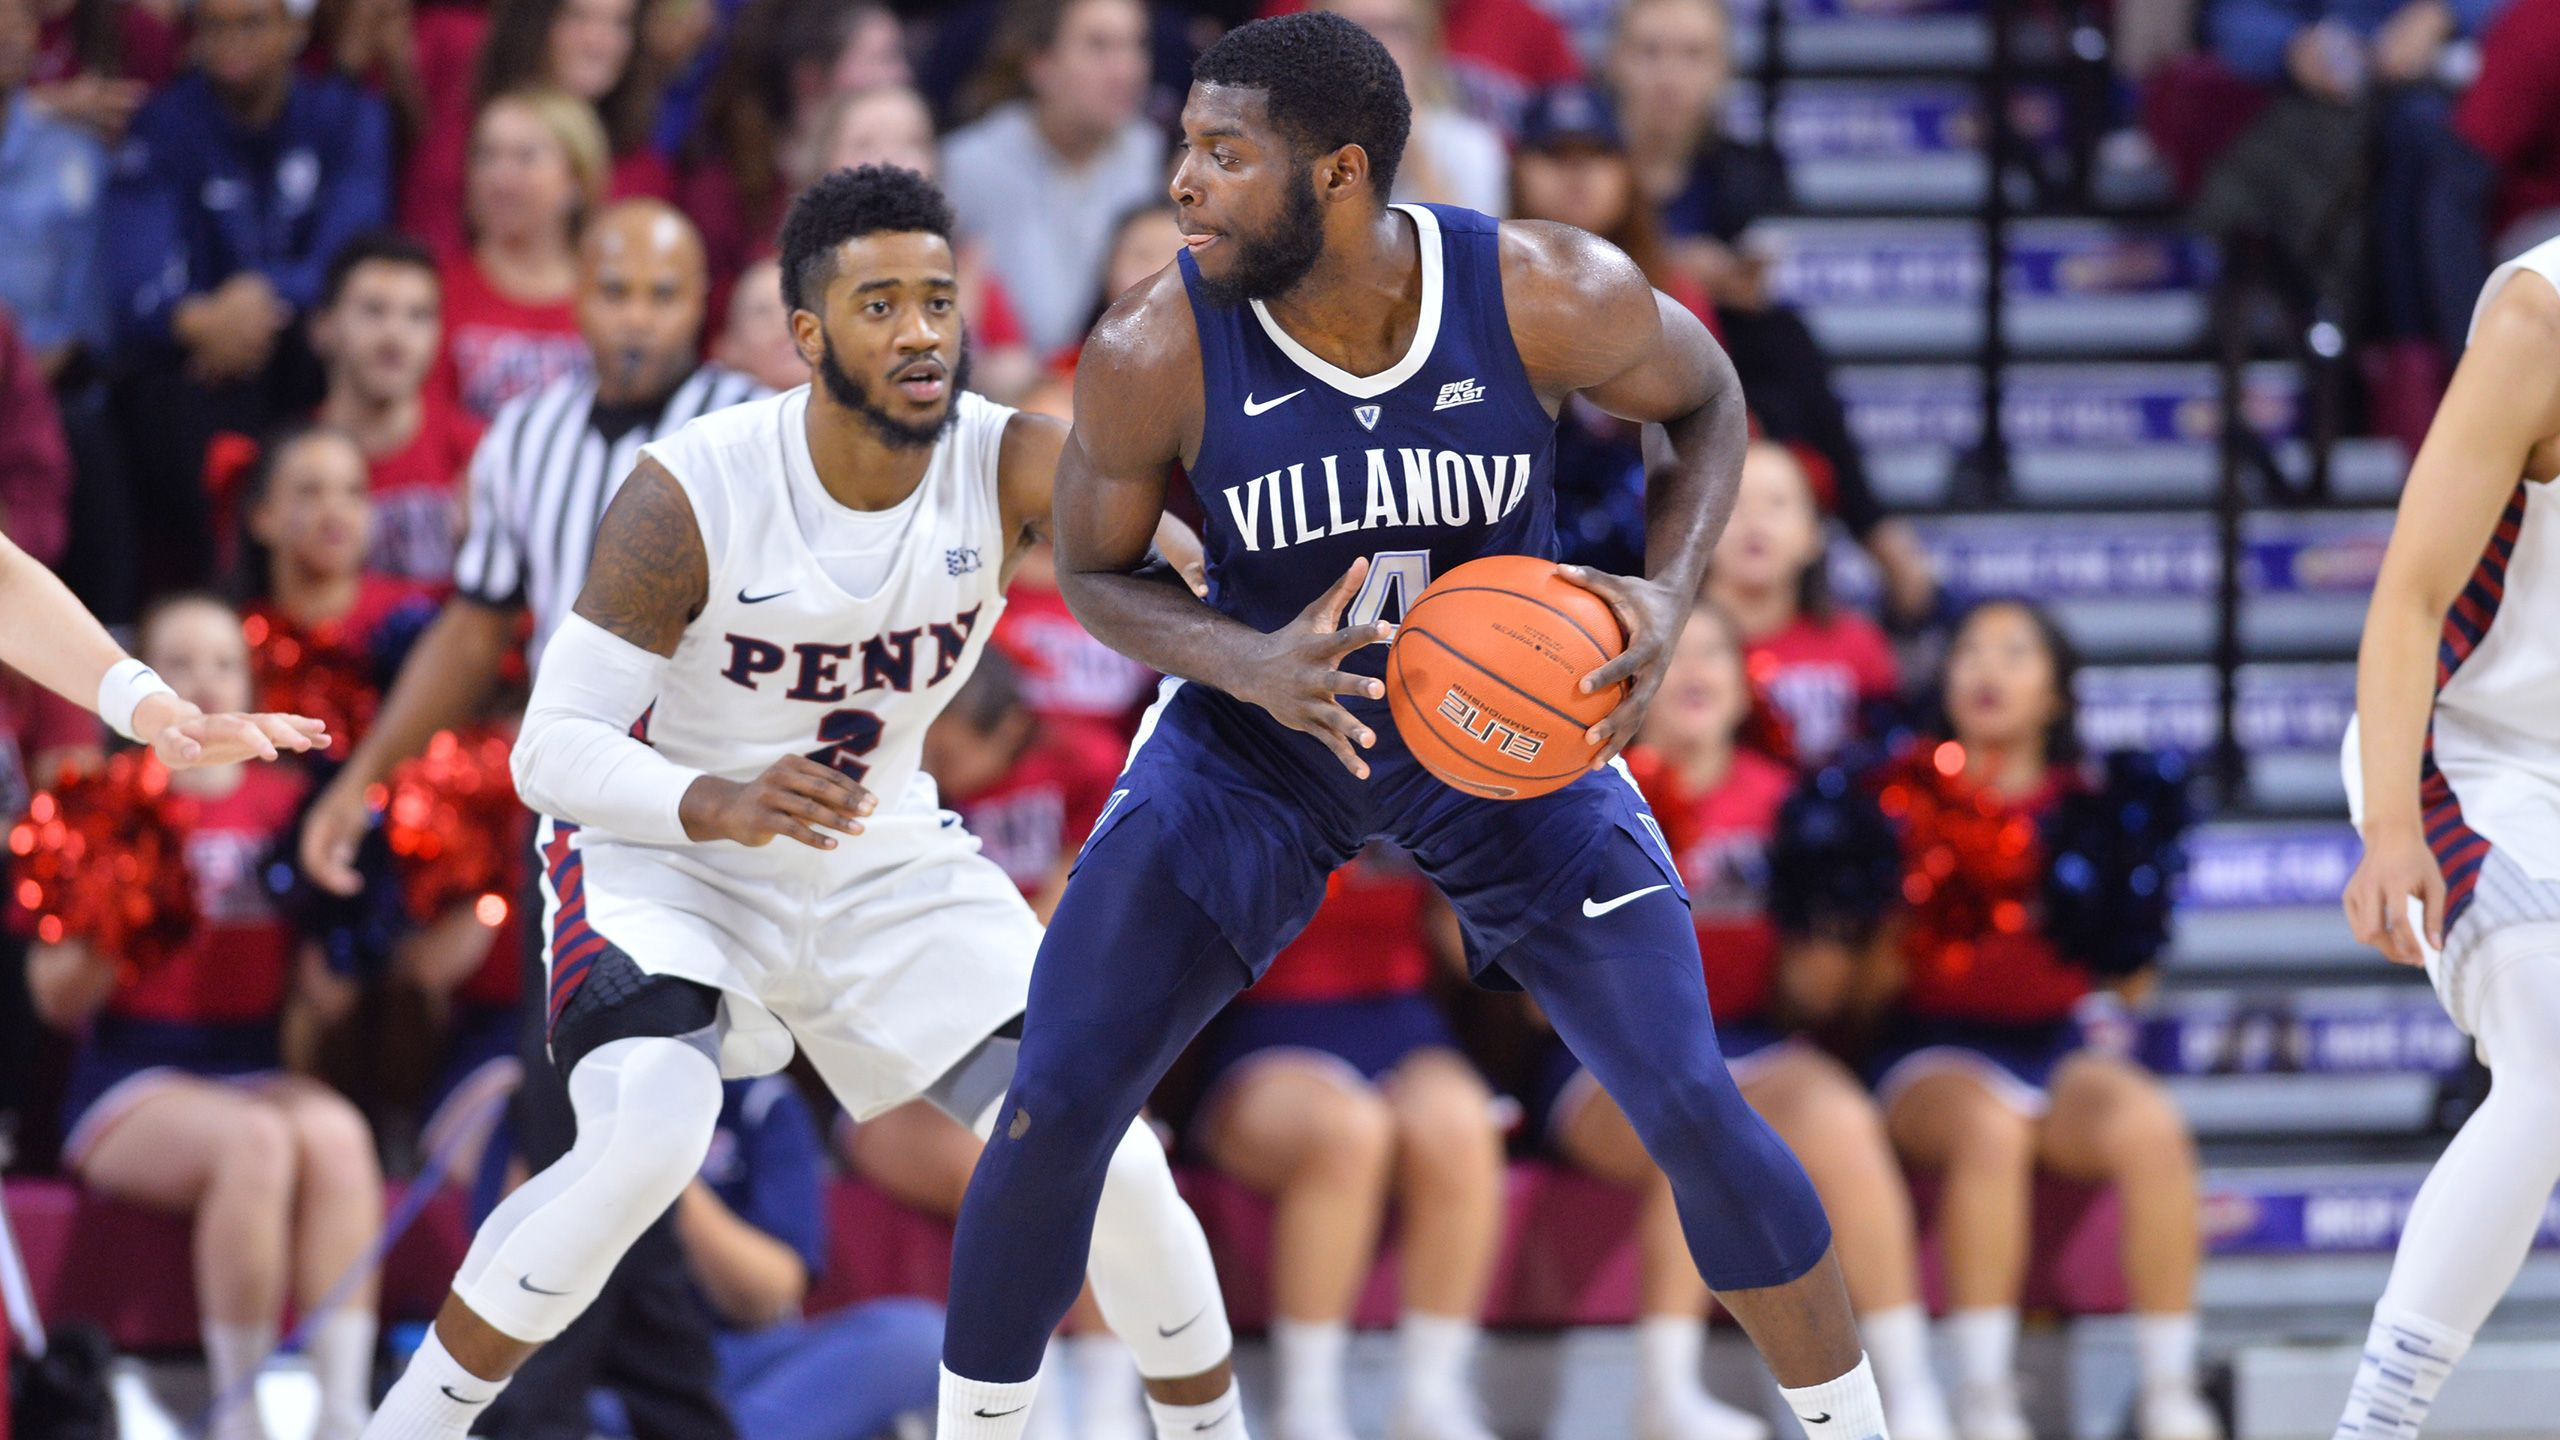 #17 Villanova vs. Pennsylvania (M Basketball)